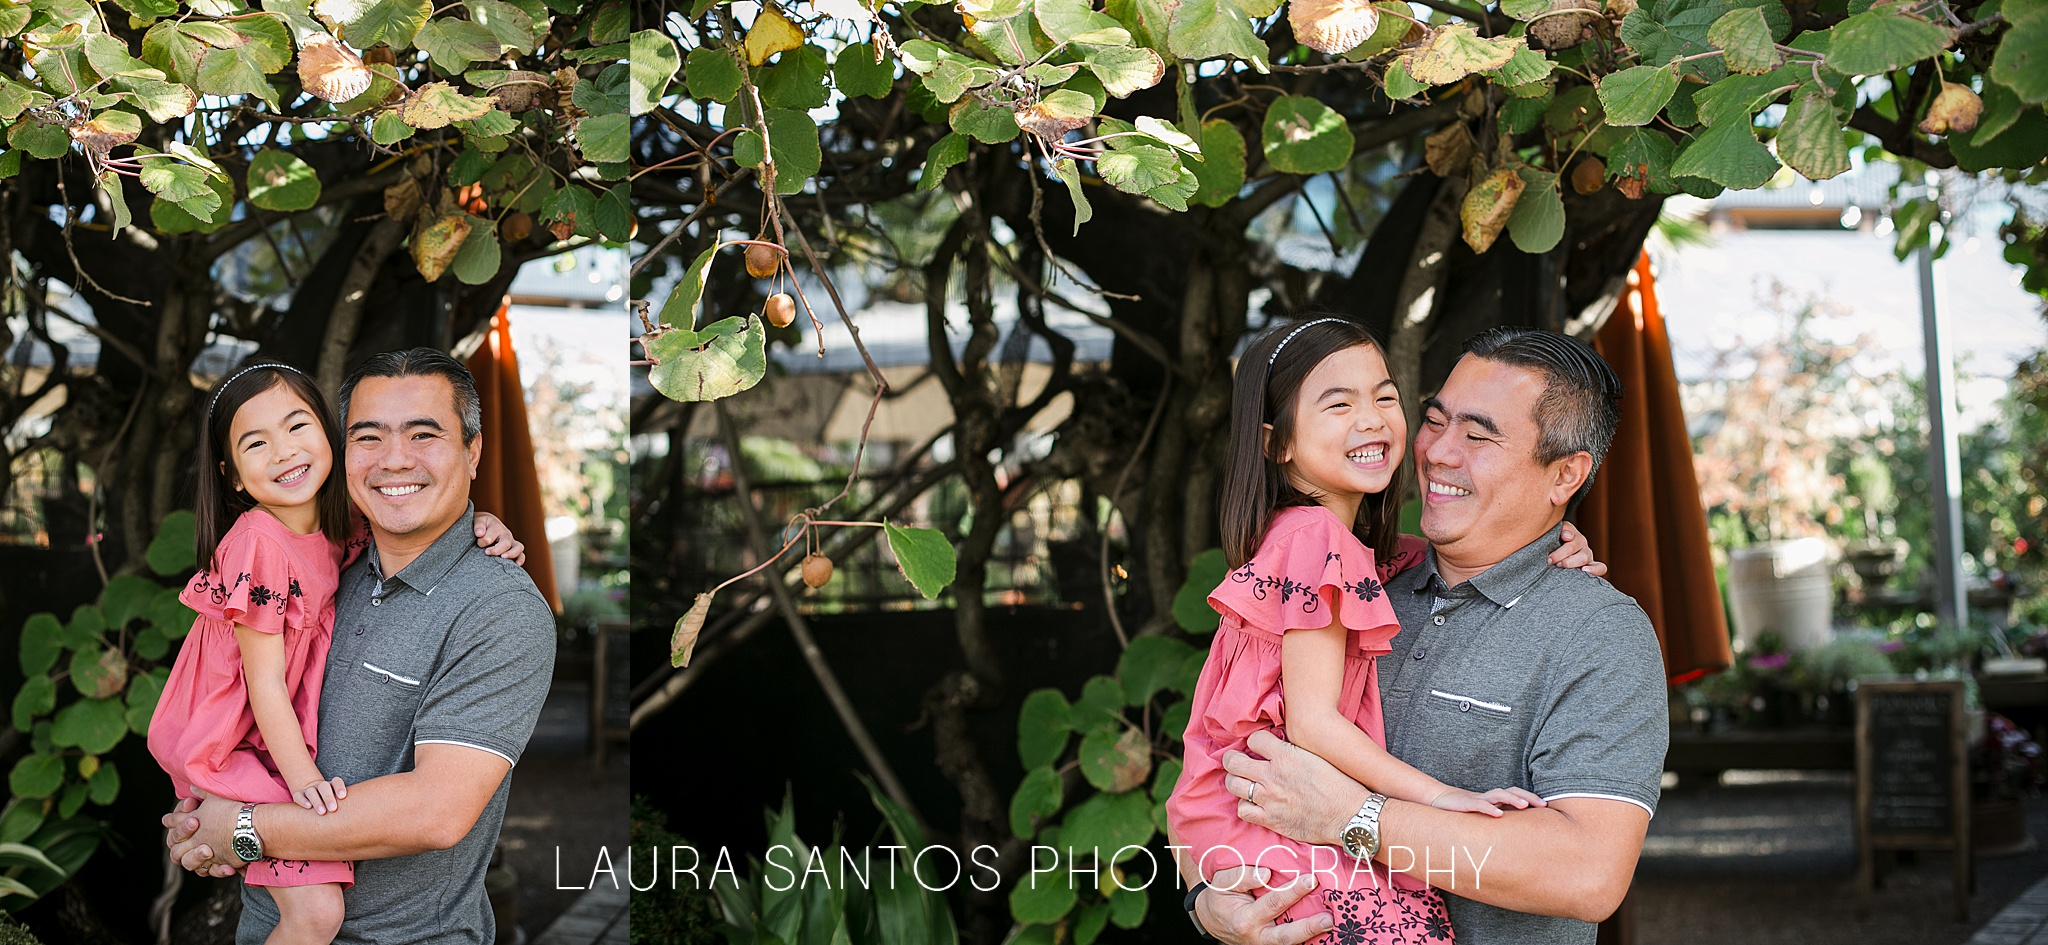 Laura Santos Photography Portland Oregon Family Photographer_0863.jpg